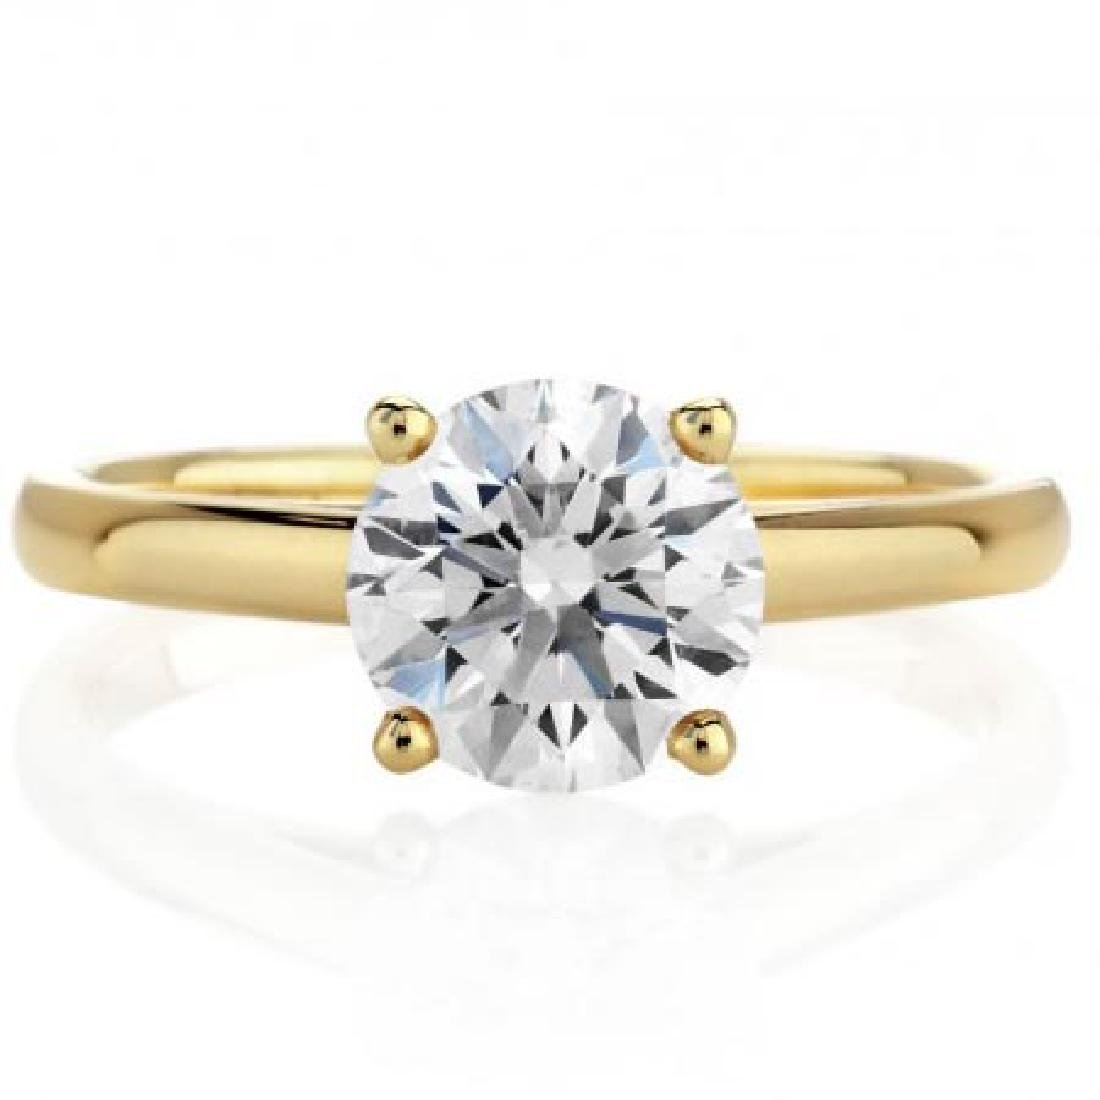 CERTIFIED 1 CTW ROUND H/VVS2 SOLITAIRE RING IN 14K YELL